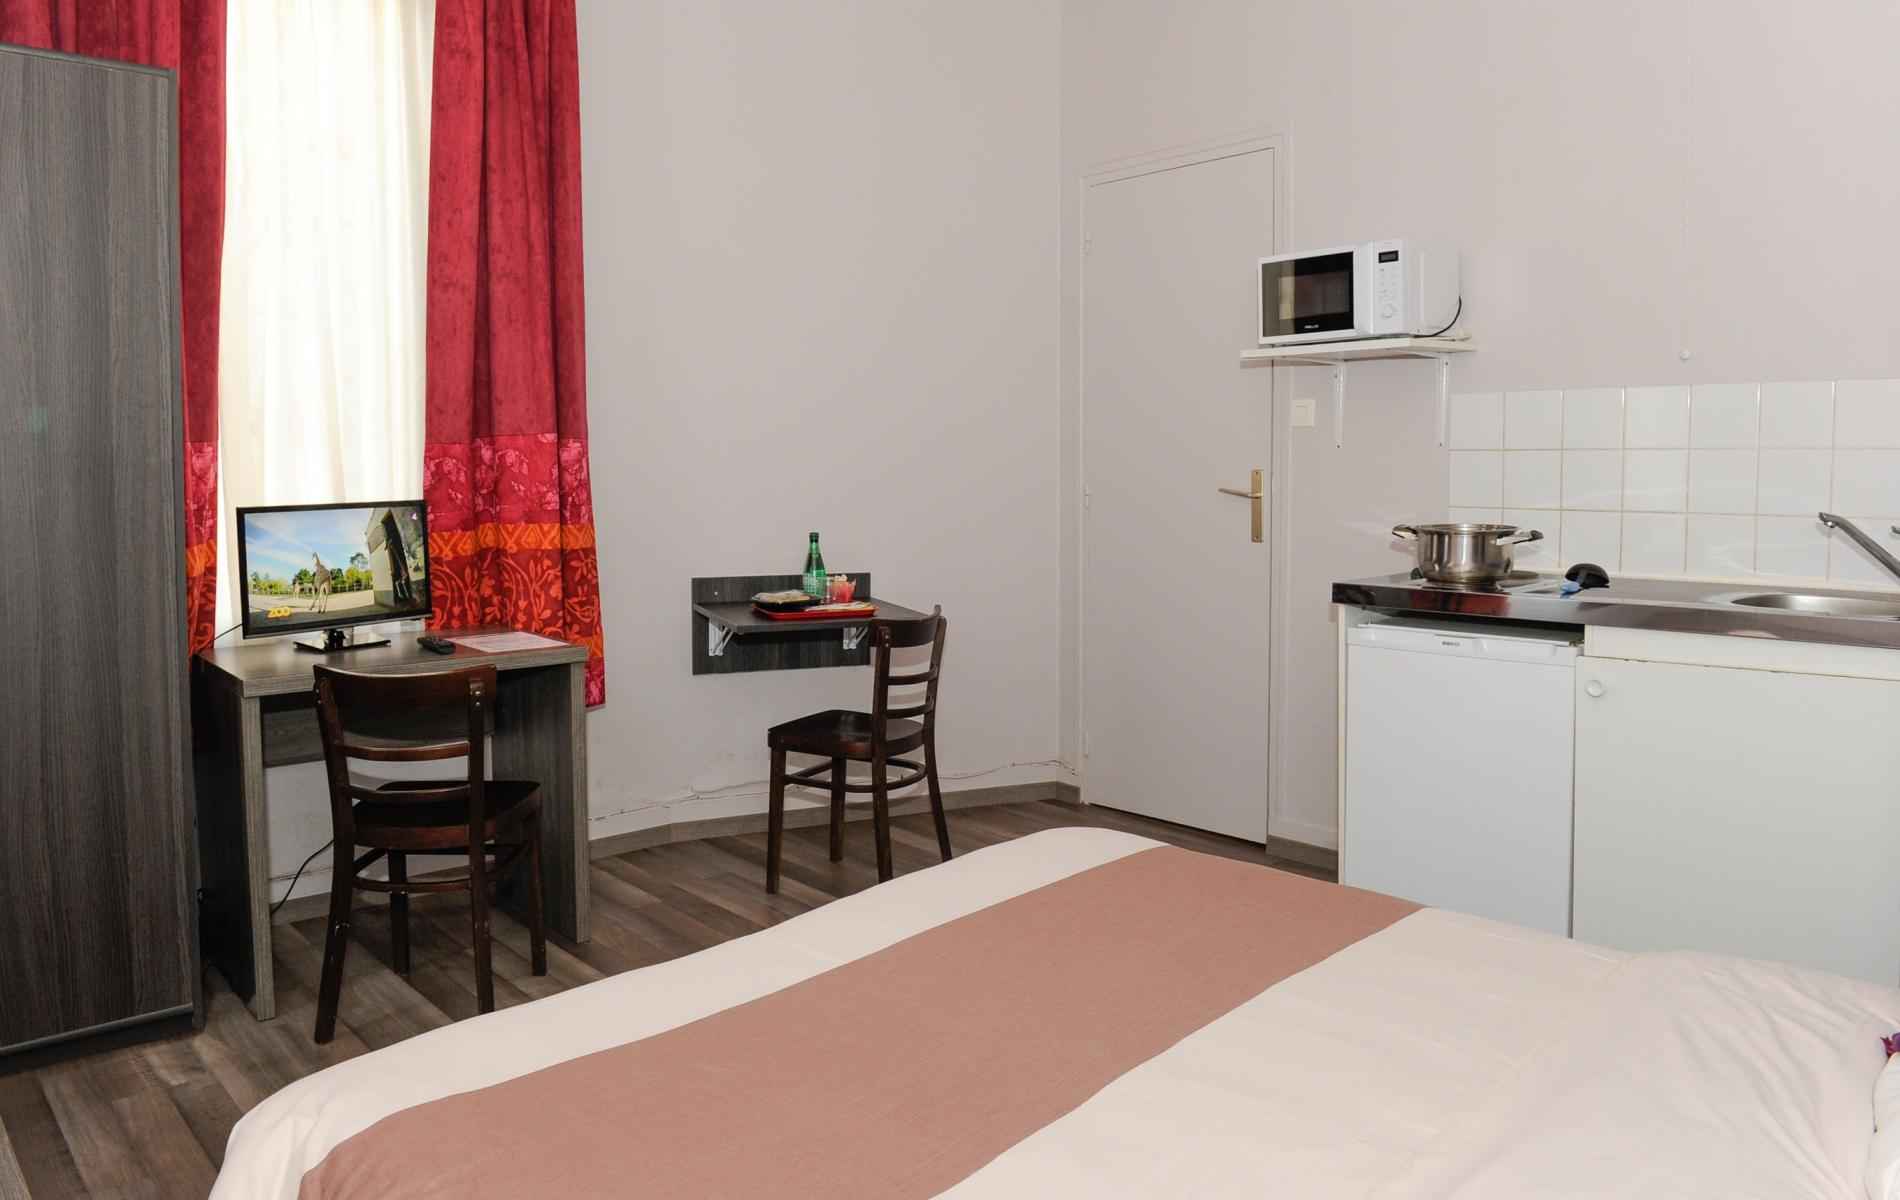 Chambre Appart'Hotel Le Havre